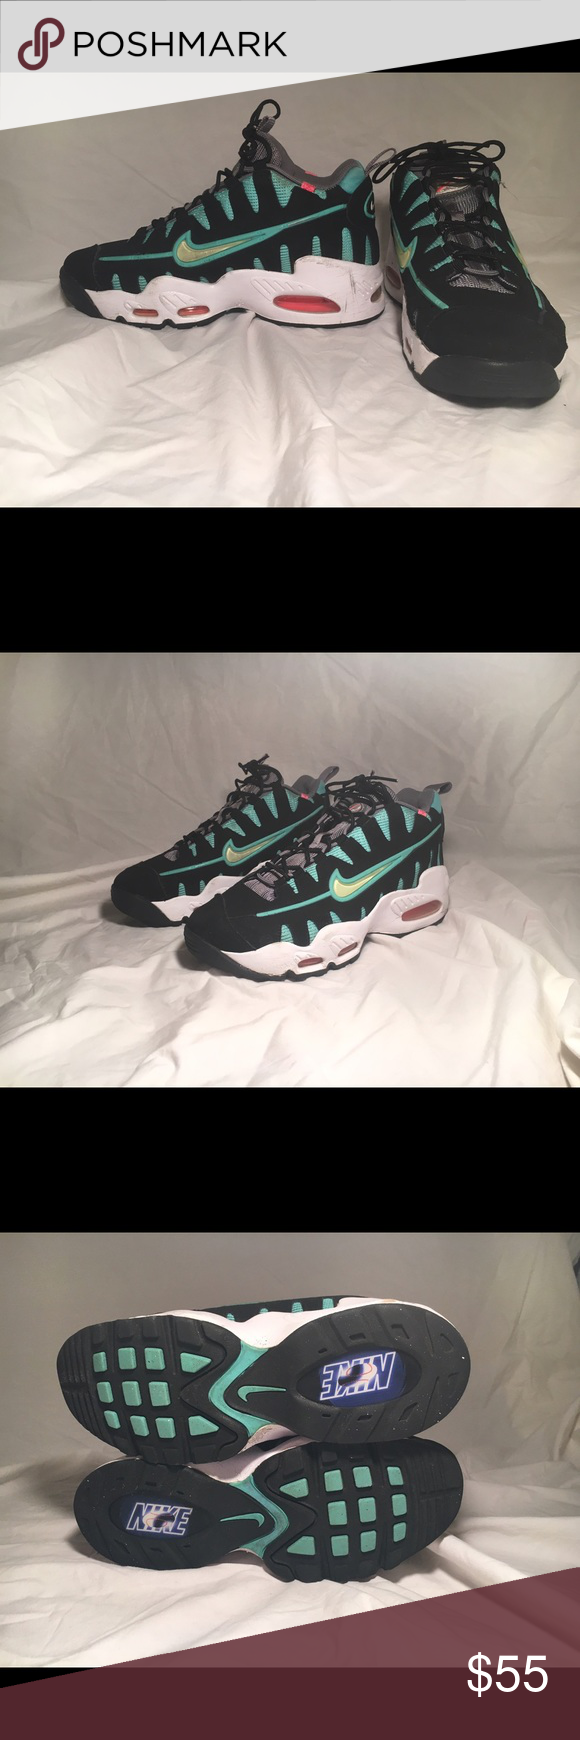 870d4ab132ad ... italy nike air max nm nomo 6 gs south beach scuffed and cracked mid  sole.